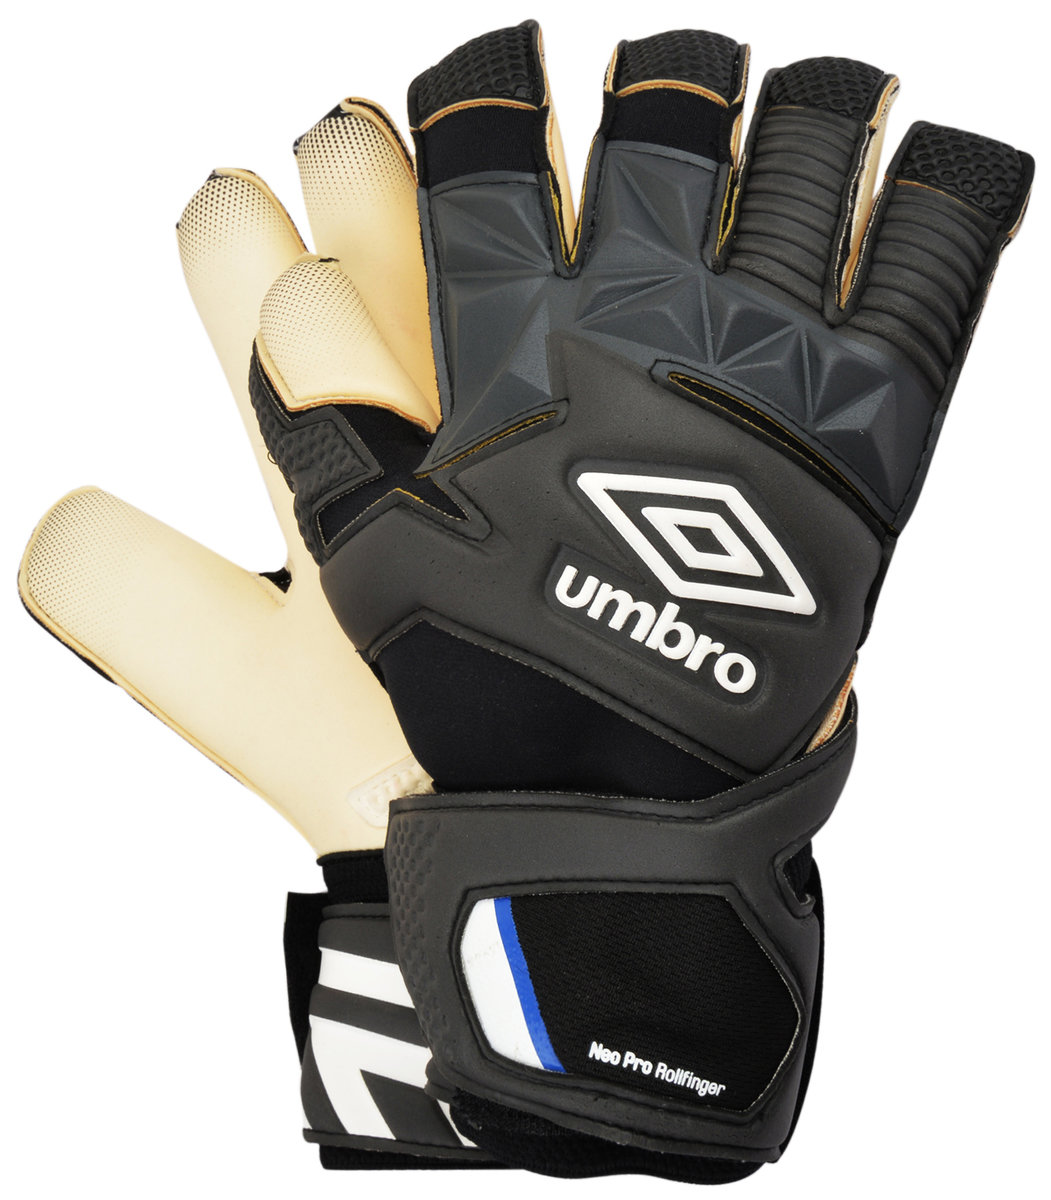 SPECIALI 98 NEO PRO ROLL FINGER